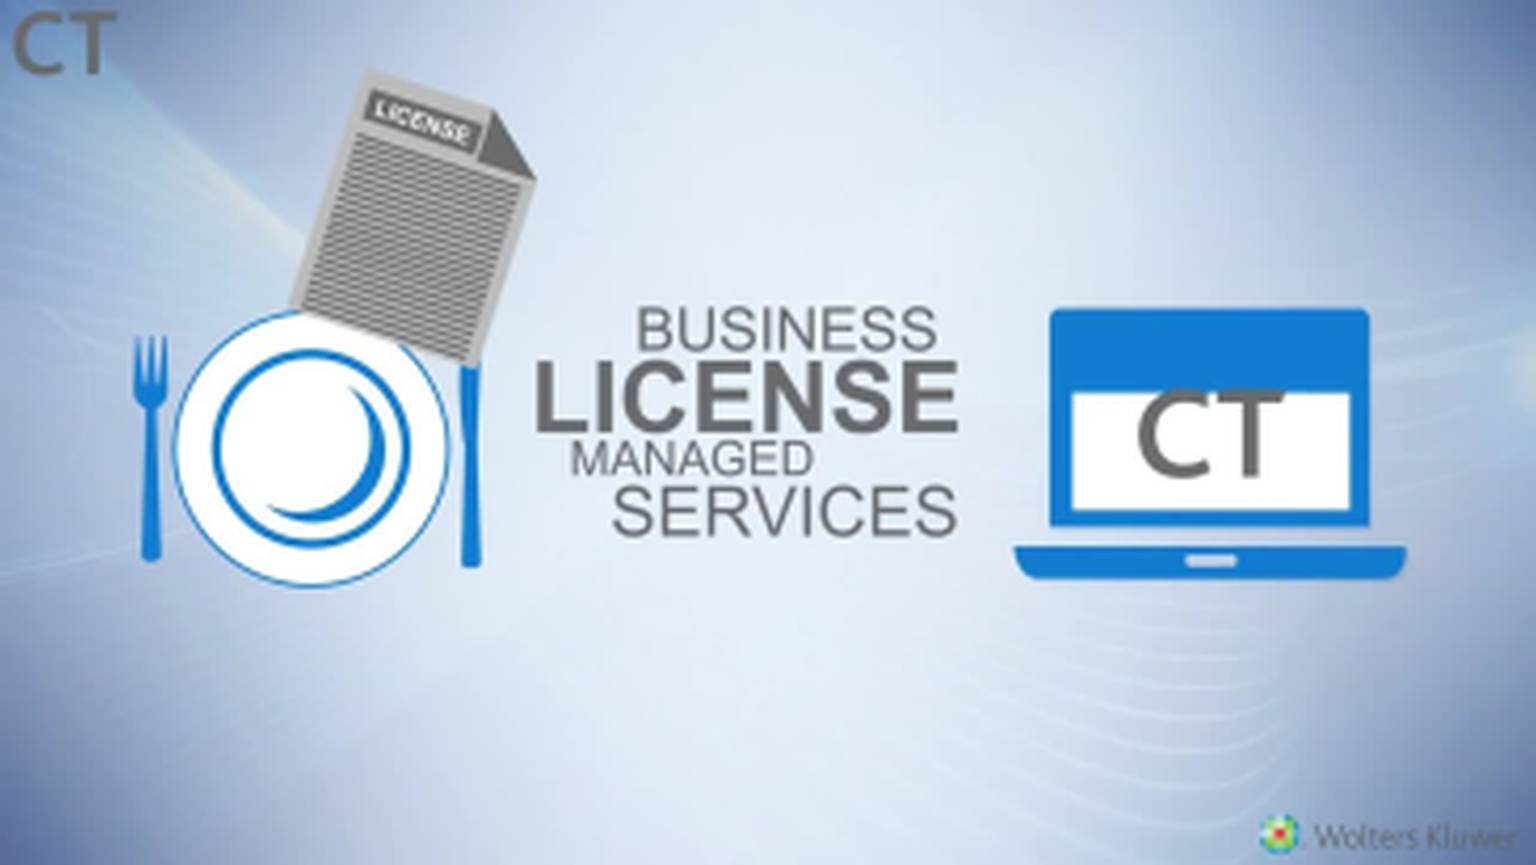 CT business license managed services